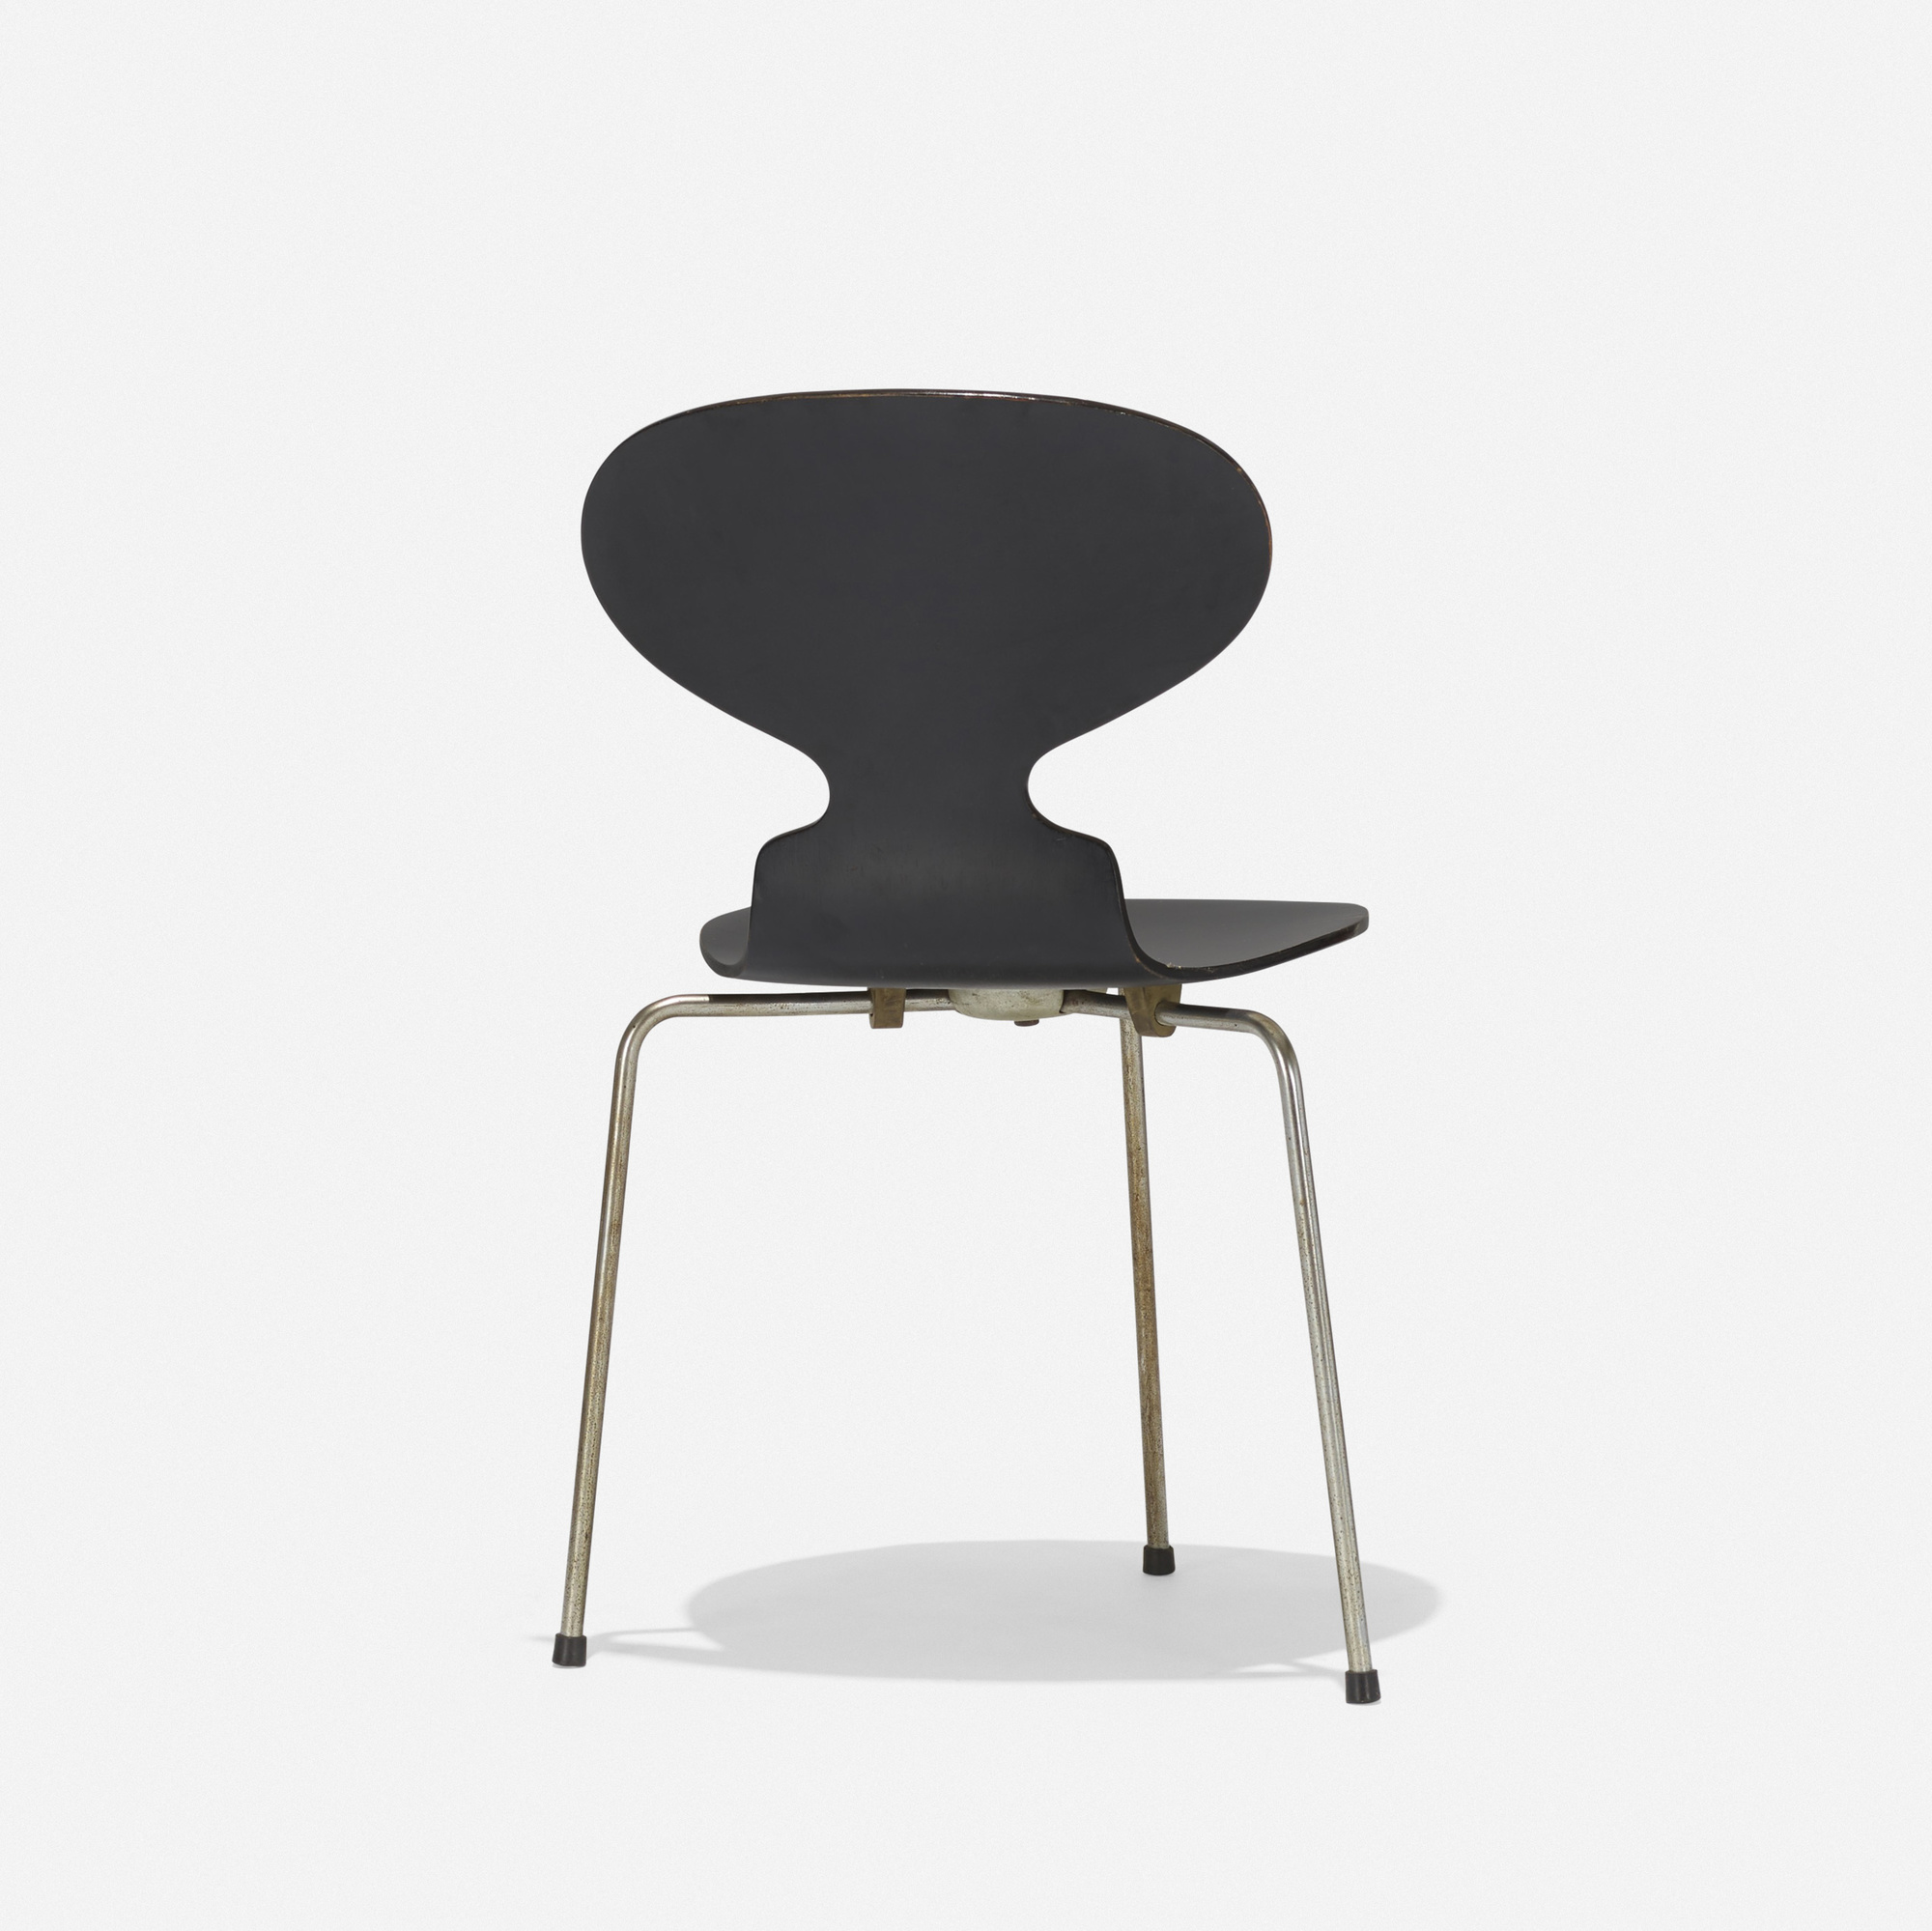 413 Arne Jacobsen Ant chair Taxonomy of Design Selections